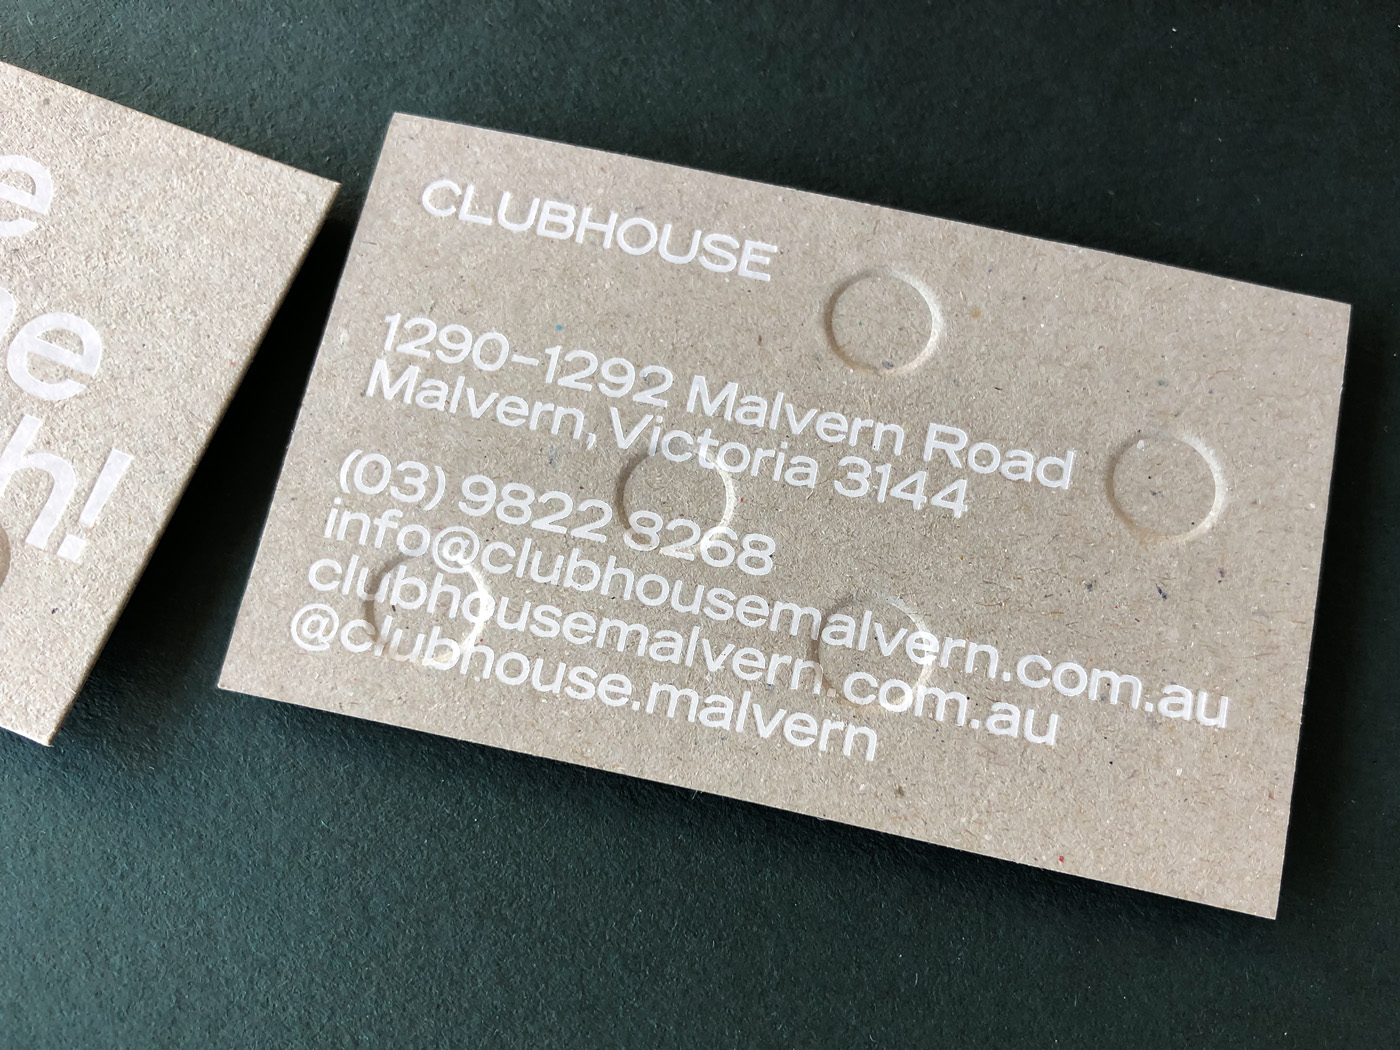 Foil embossed debossed letterpress business cards for Clubhouse on Boxboard 2